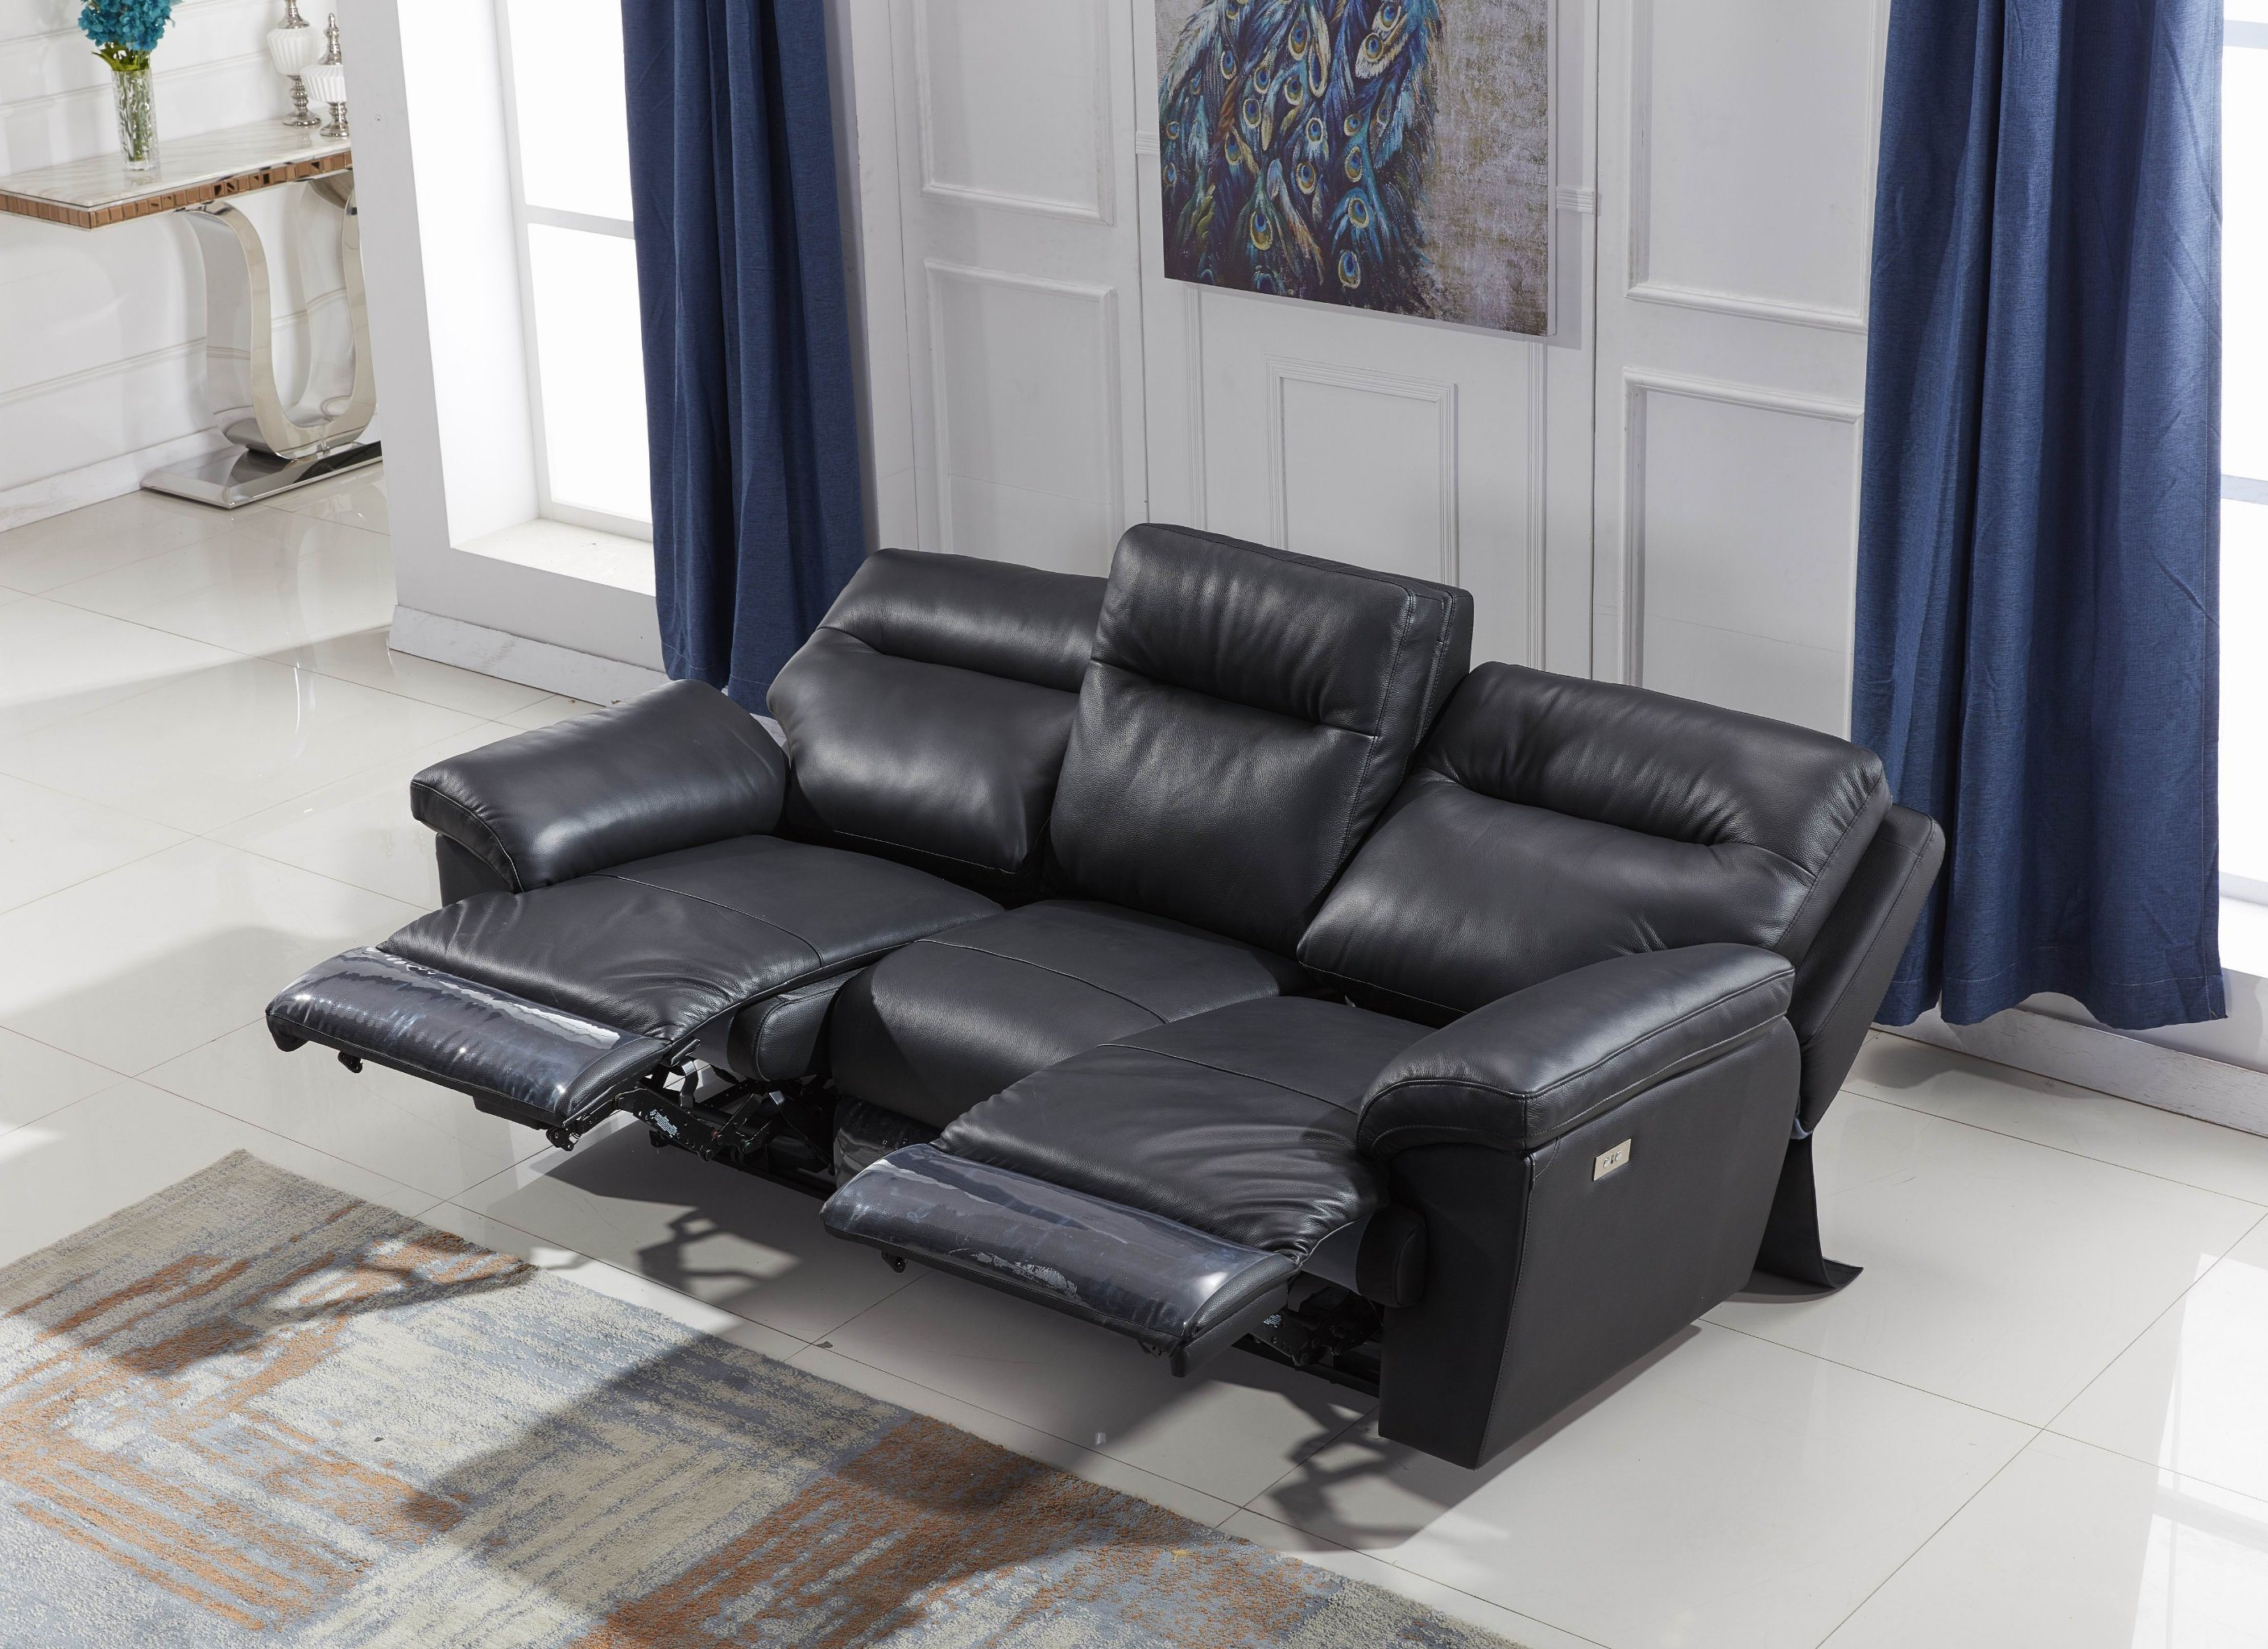 Awesome Miami Modern Style Automatic Italy Genuine Leather Recliner Caraccident5 Cool Chair Designs And Ideas Caraccident5Info